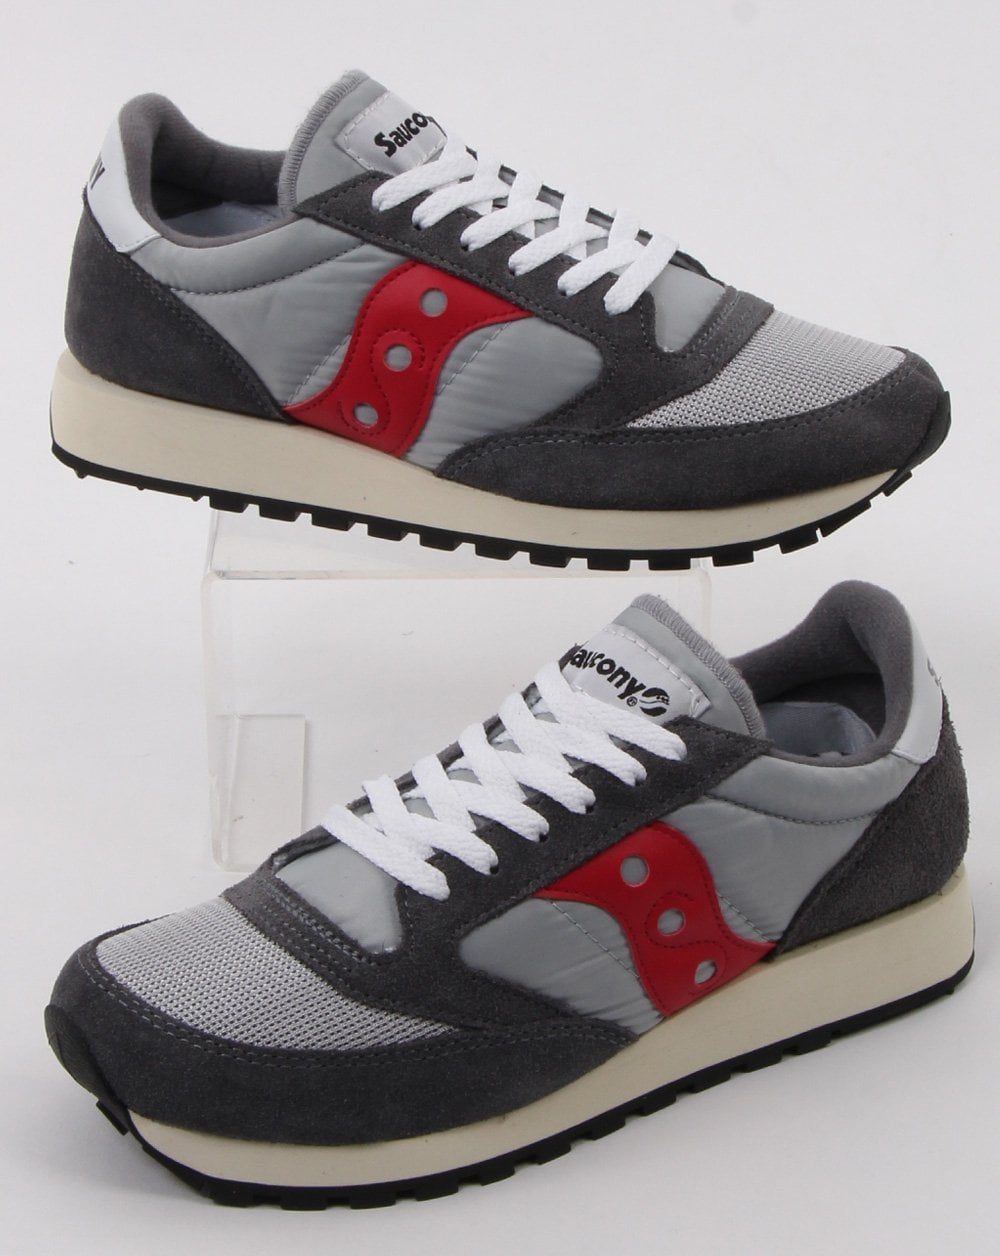 on sale 1367d 1afe2 Saucony Jazz Original Vintage Trainers Grey/red